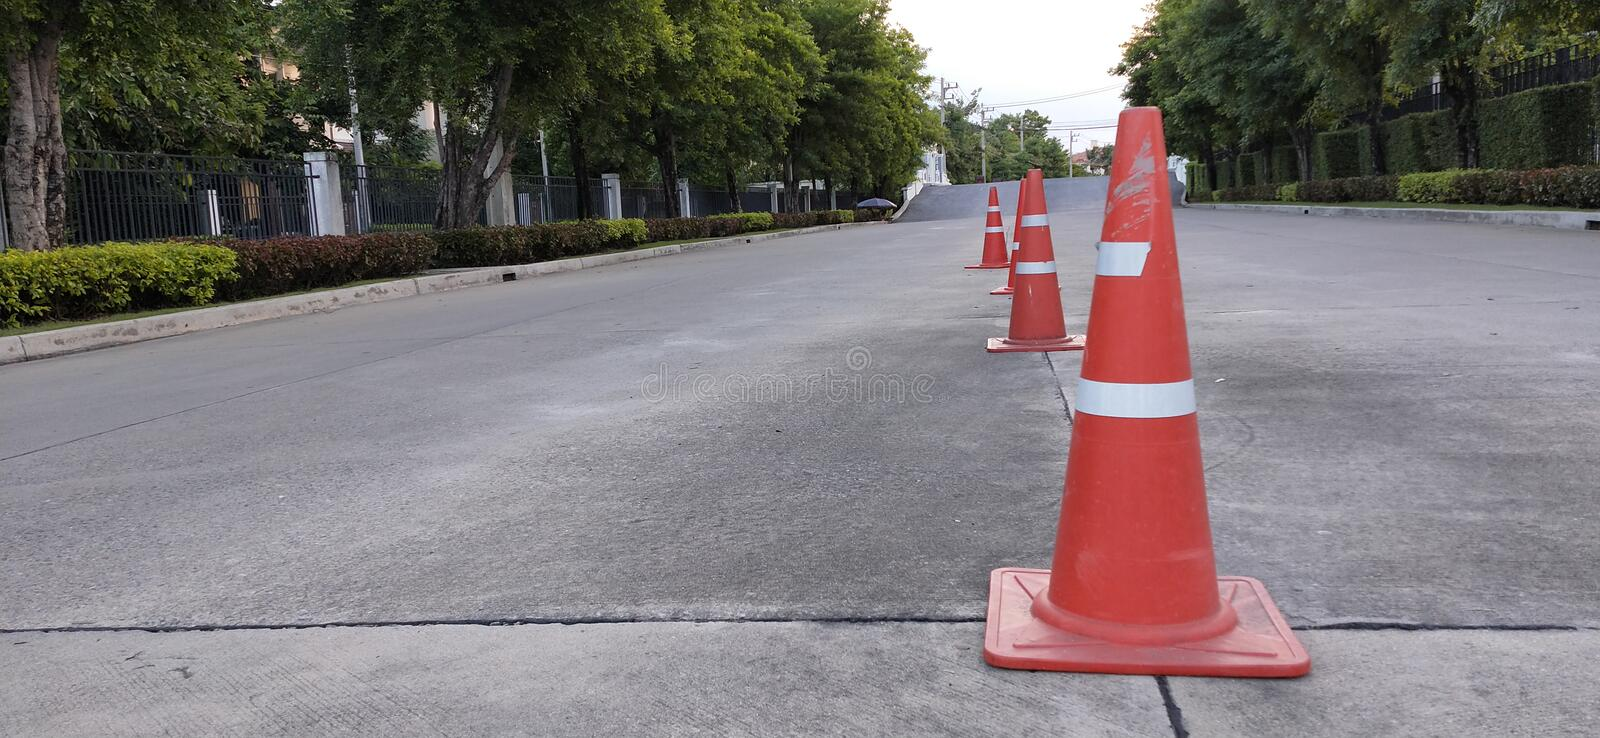 traffic cone on village road royalty free stock photos